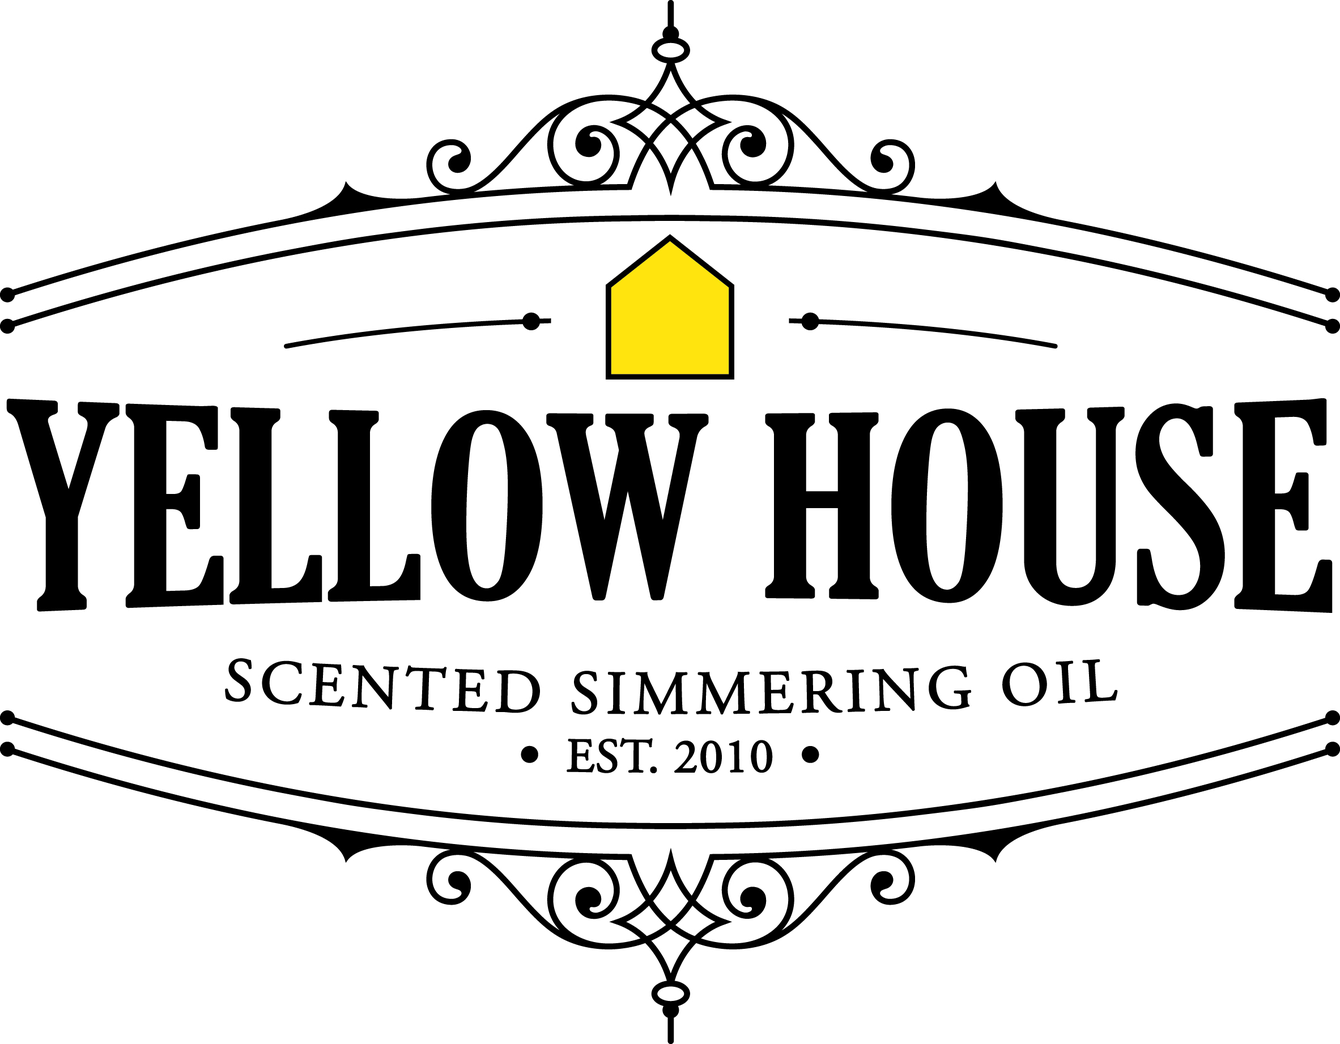 Yellow House Scented Simmering Oil